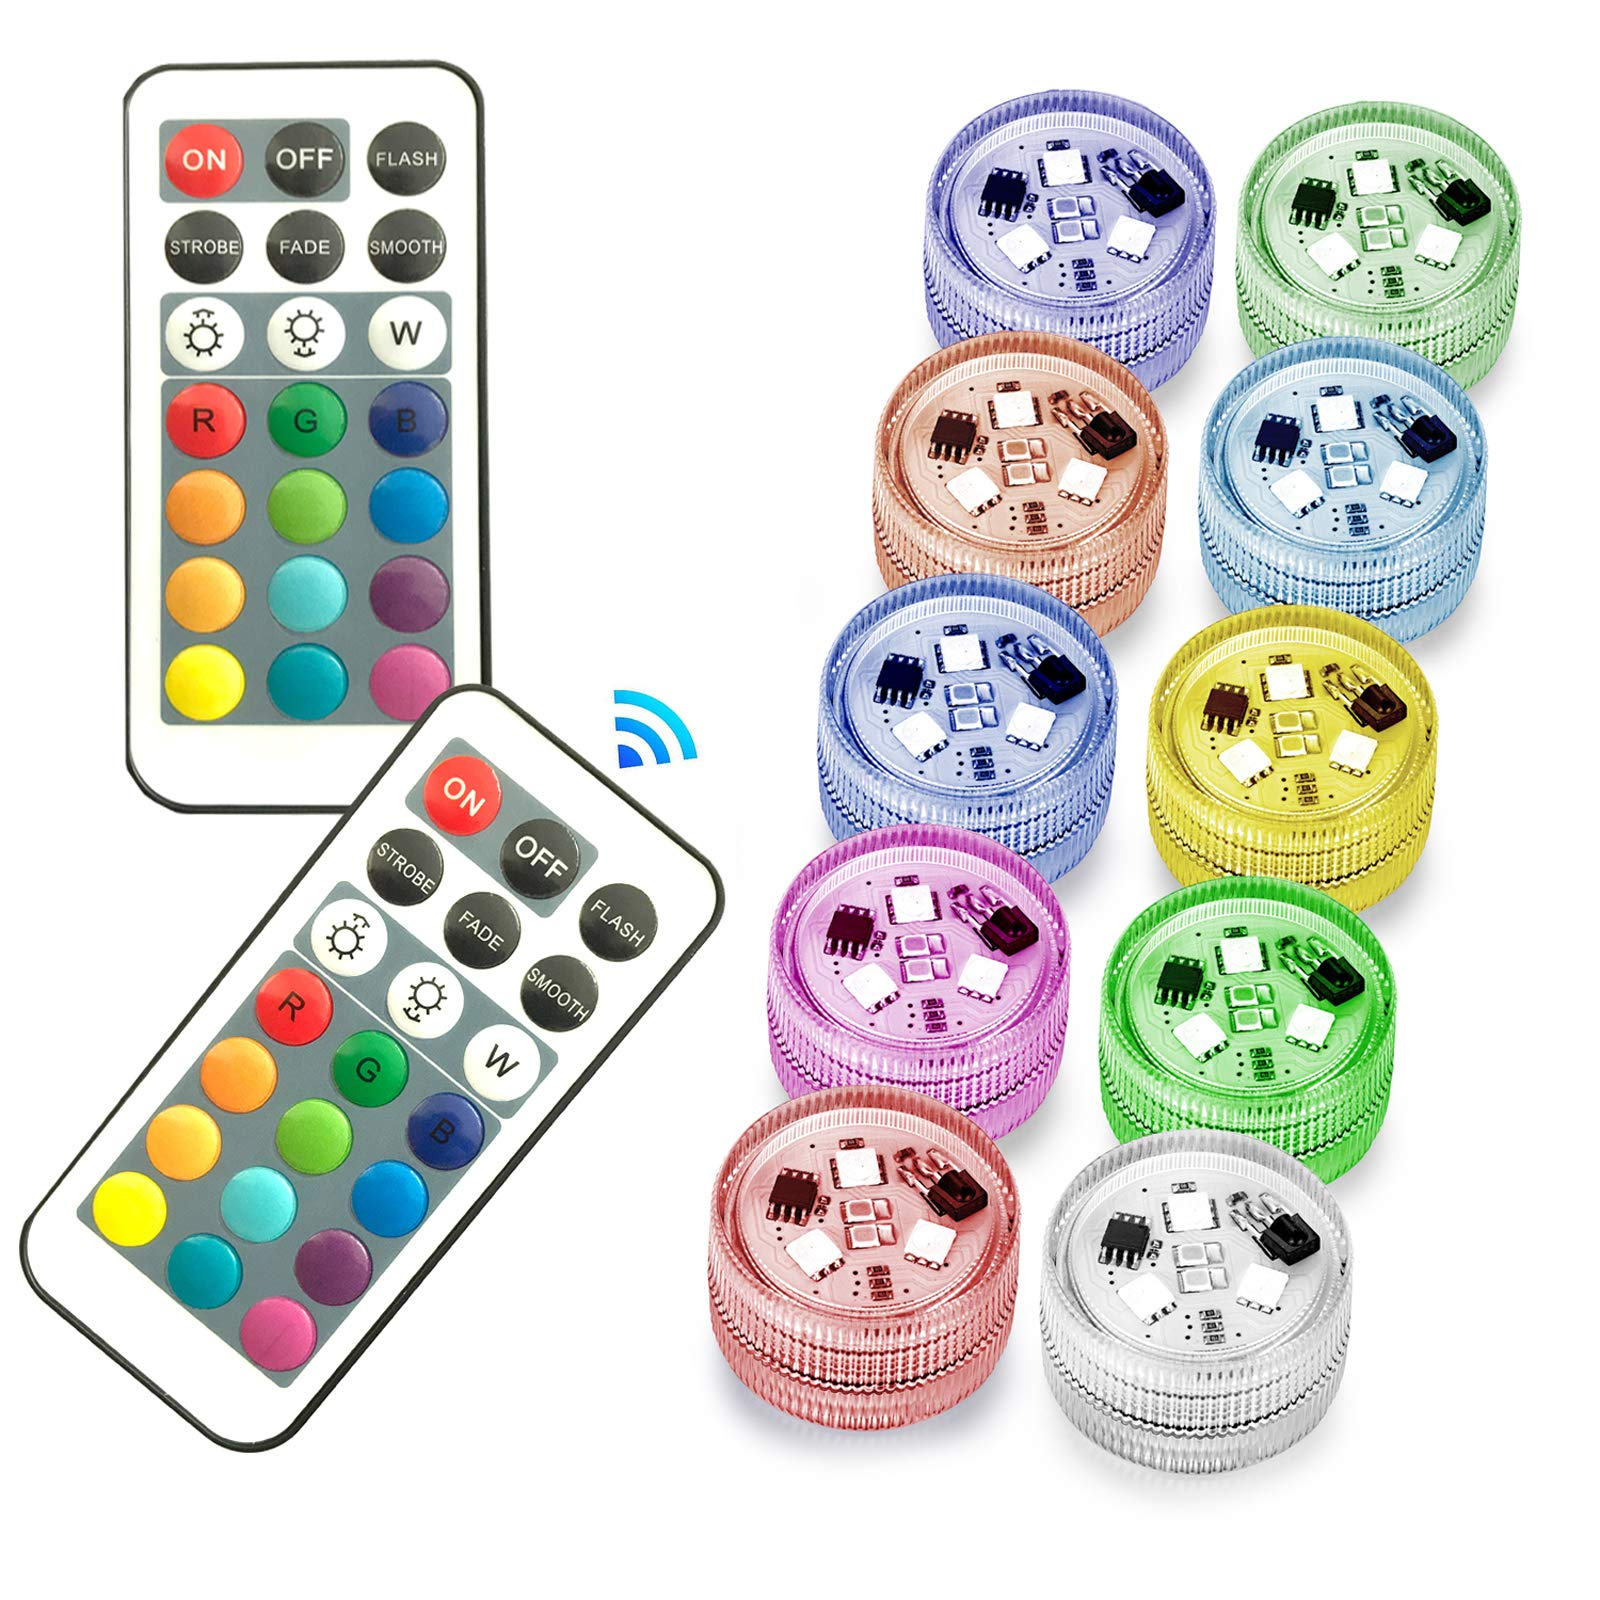 Melon Boy Submersible Led Lights,Underwater Waterproof Bath Lights with Remote Control for Hot Tub,Vase Base,Pond,Pool,Aquarium,Party,Fish Tank,Home Decorations Mood Lights 10pcs by Melon Boy (Image #1)